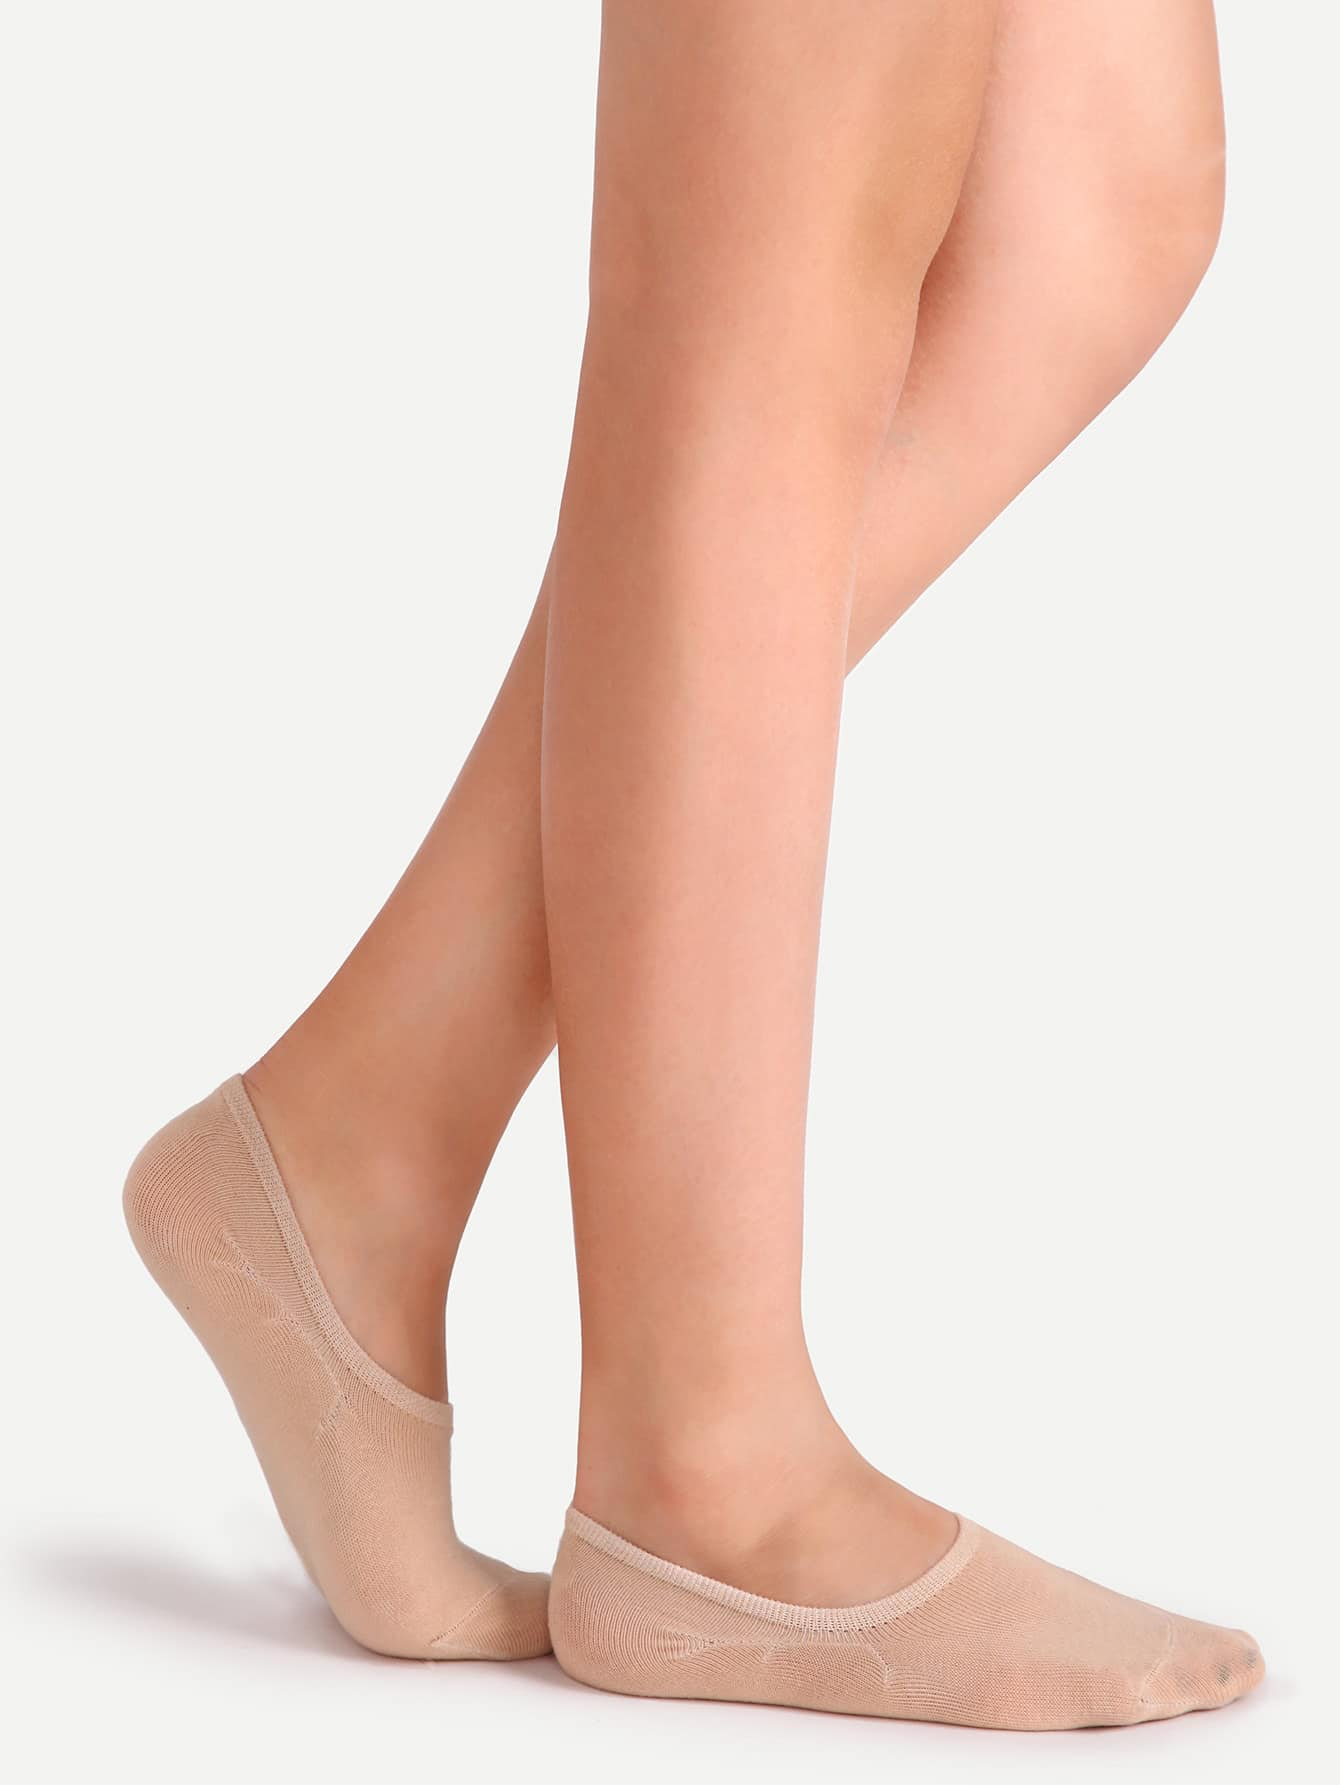 Nude No Show Socks For Women sock161028301